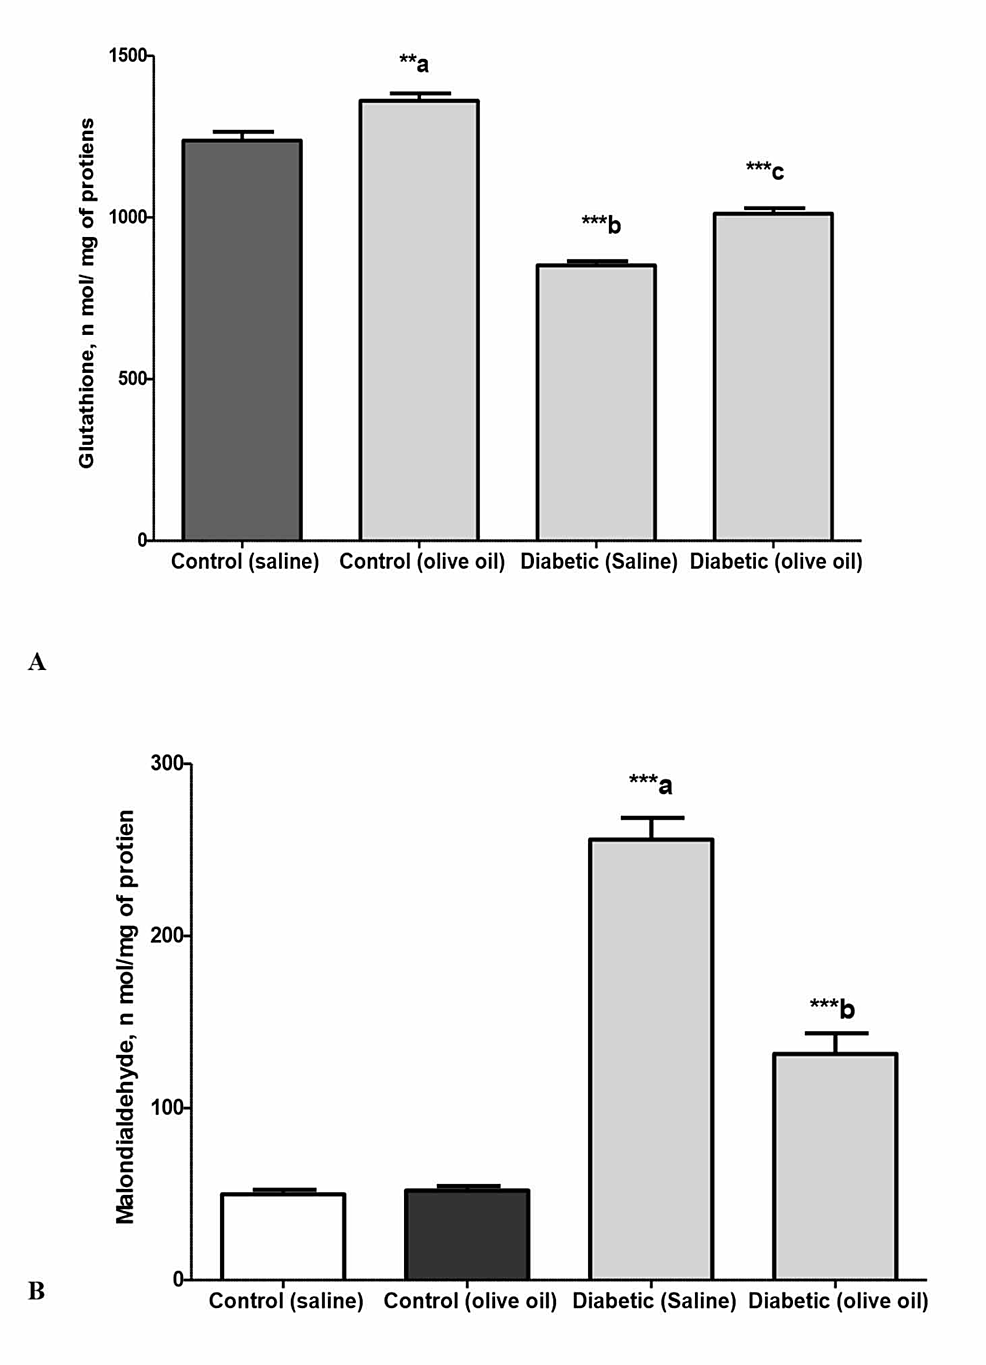 Levels-of-glutathione-(A)-and-malondialdehyde-(B)-in-isolated-cardiac-tissues-of-the-control-and-diabetic-rats-treated-with-saline-or-olive-oil-(1-ml/kg-p.o.)-for-56-days